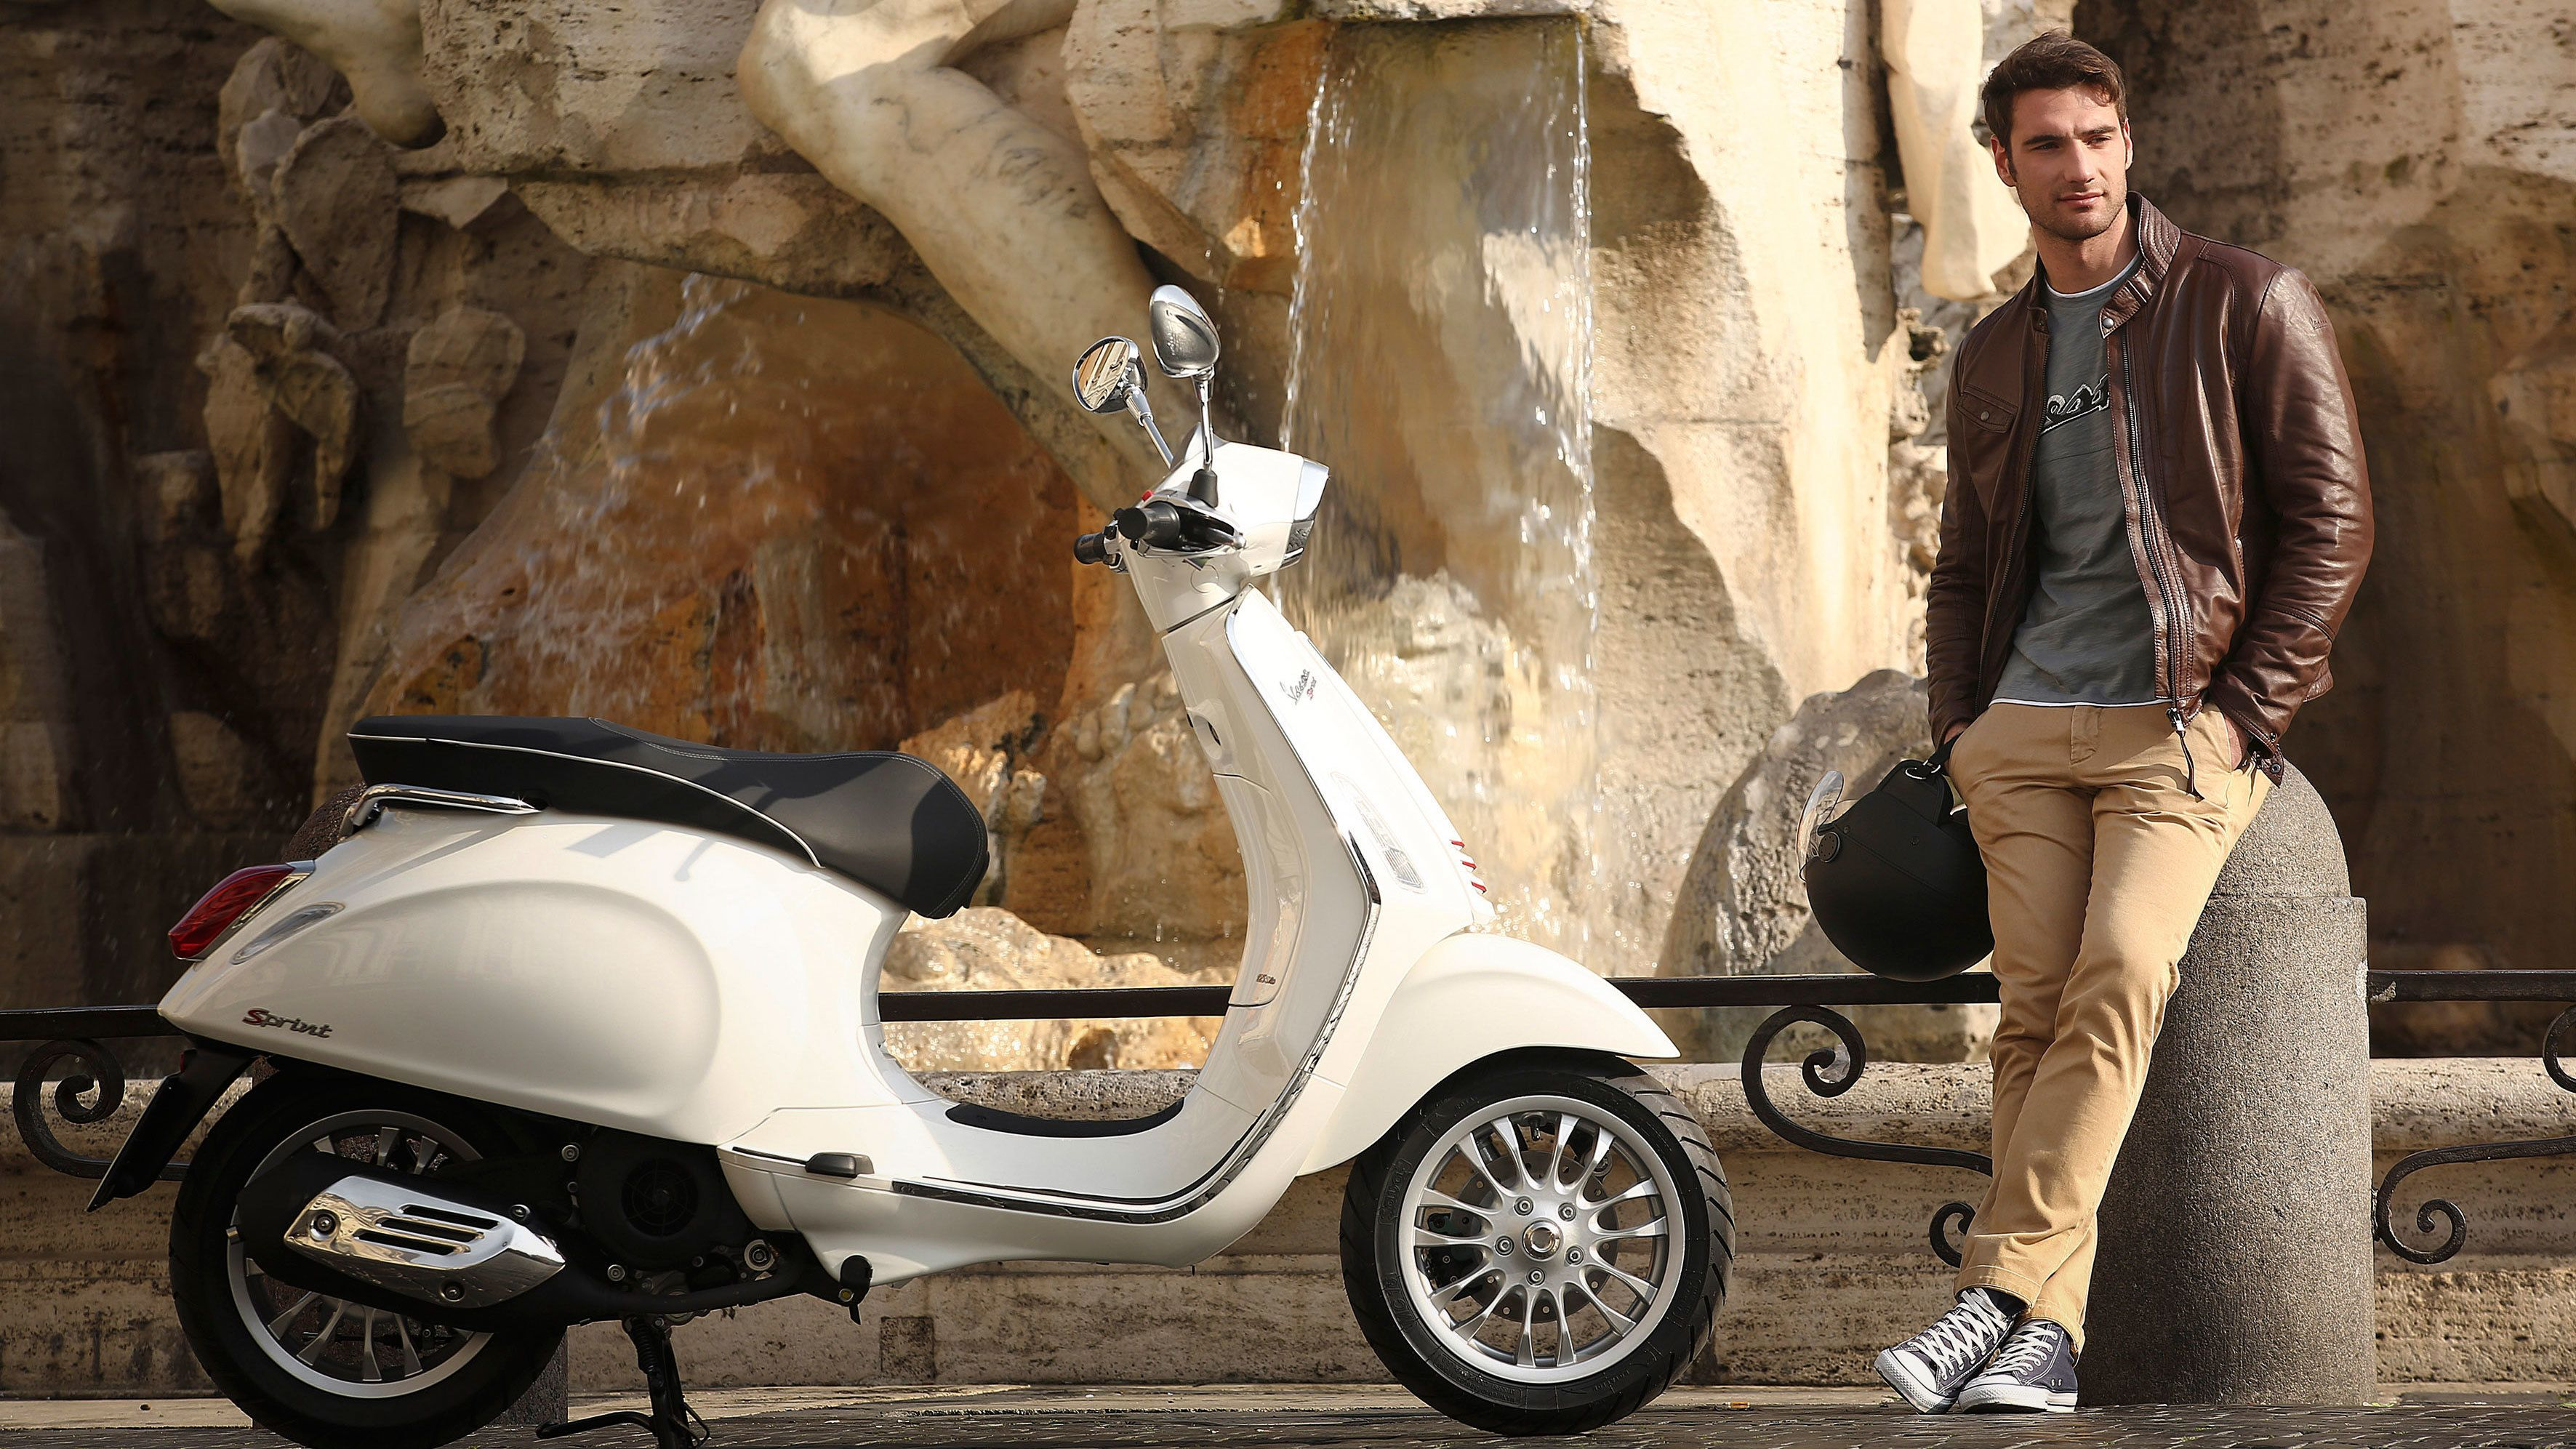 Man standing next to Vespa at a fountain in Rome